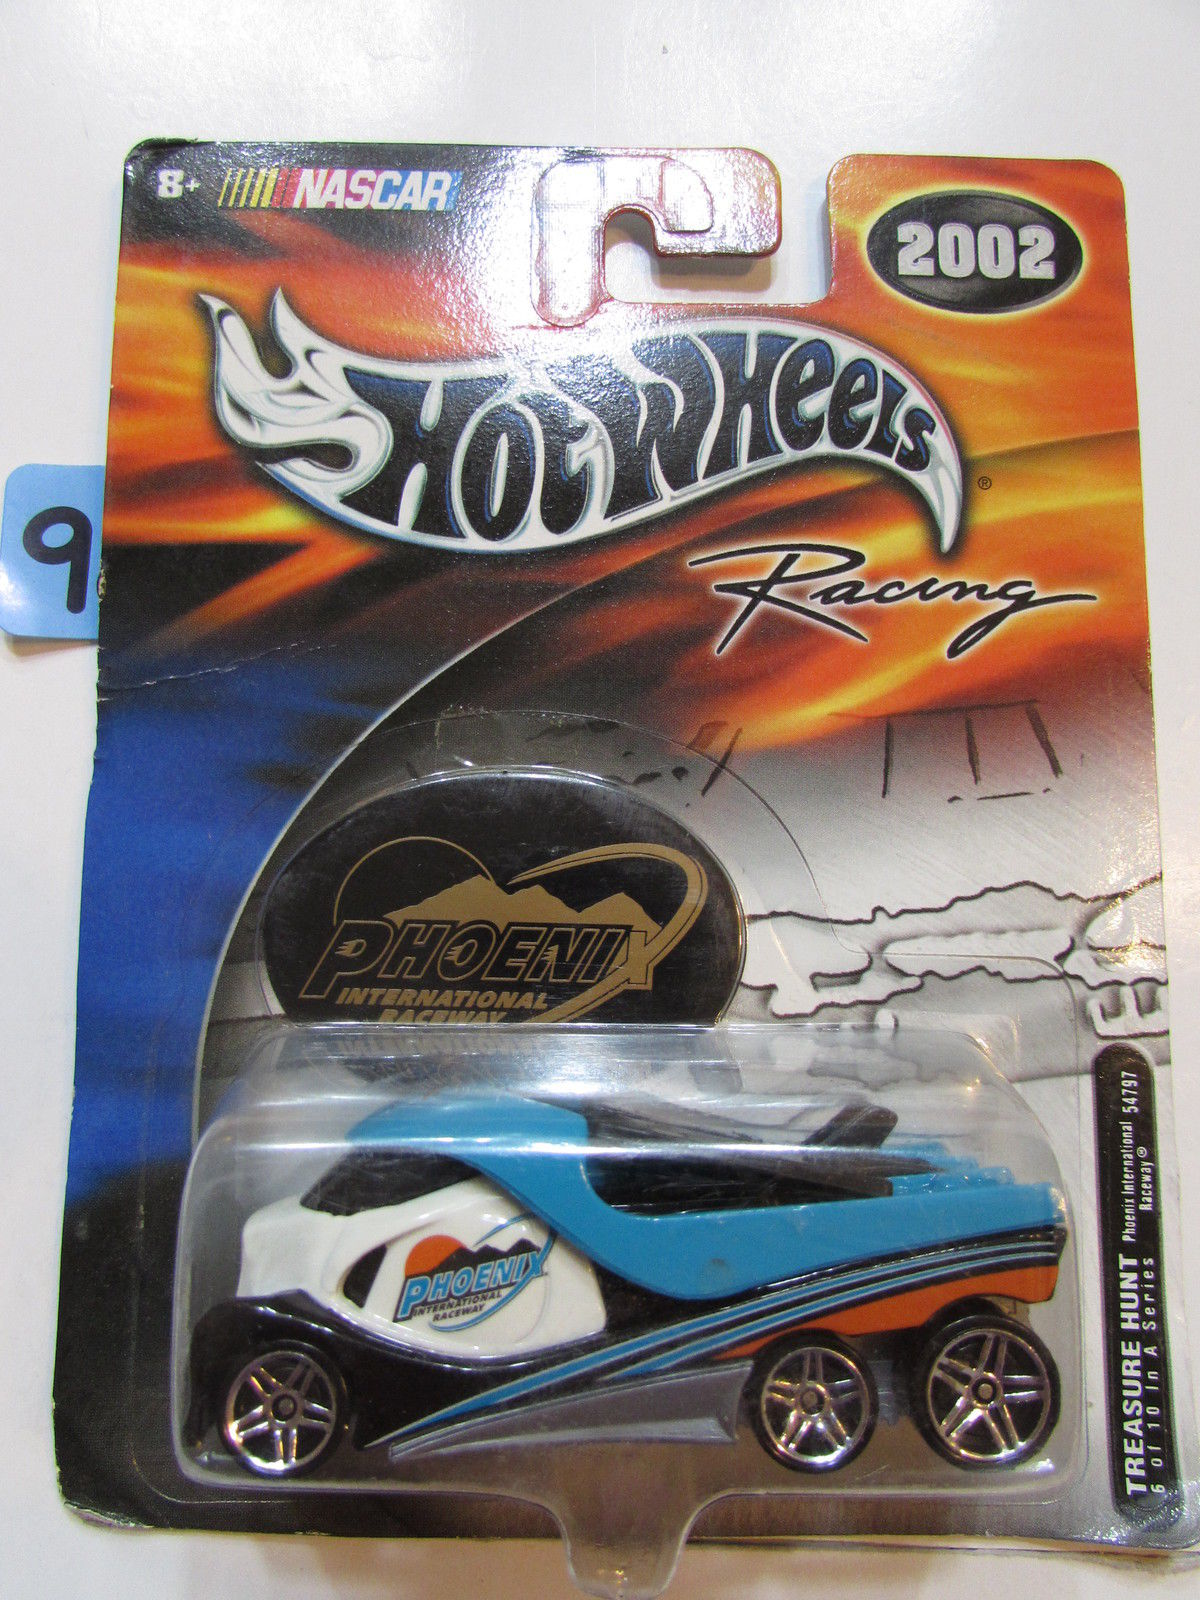 HOT WHEELS NASCAR RACING 2002 TREASURE HUNT PHOENIX INTERNATIONAL RACEWAY #6/10